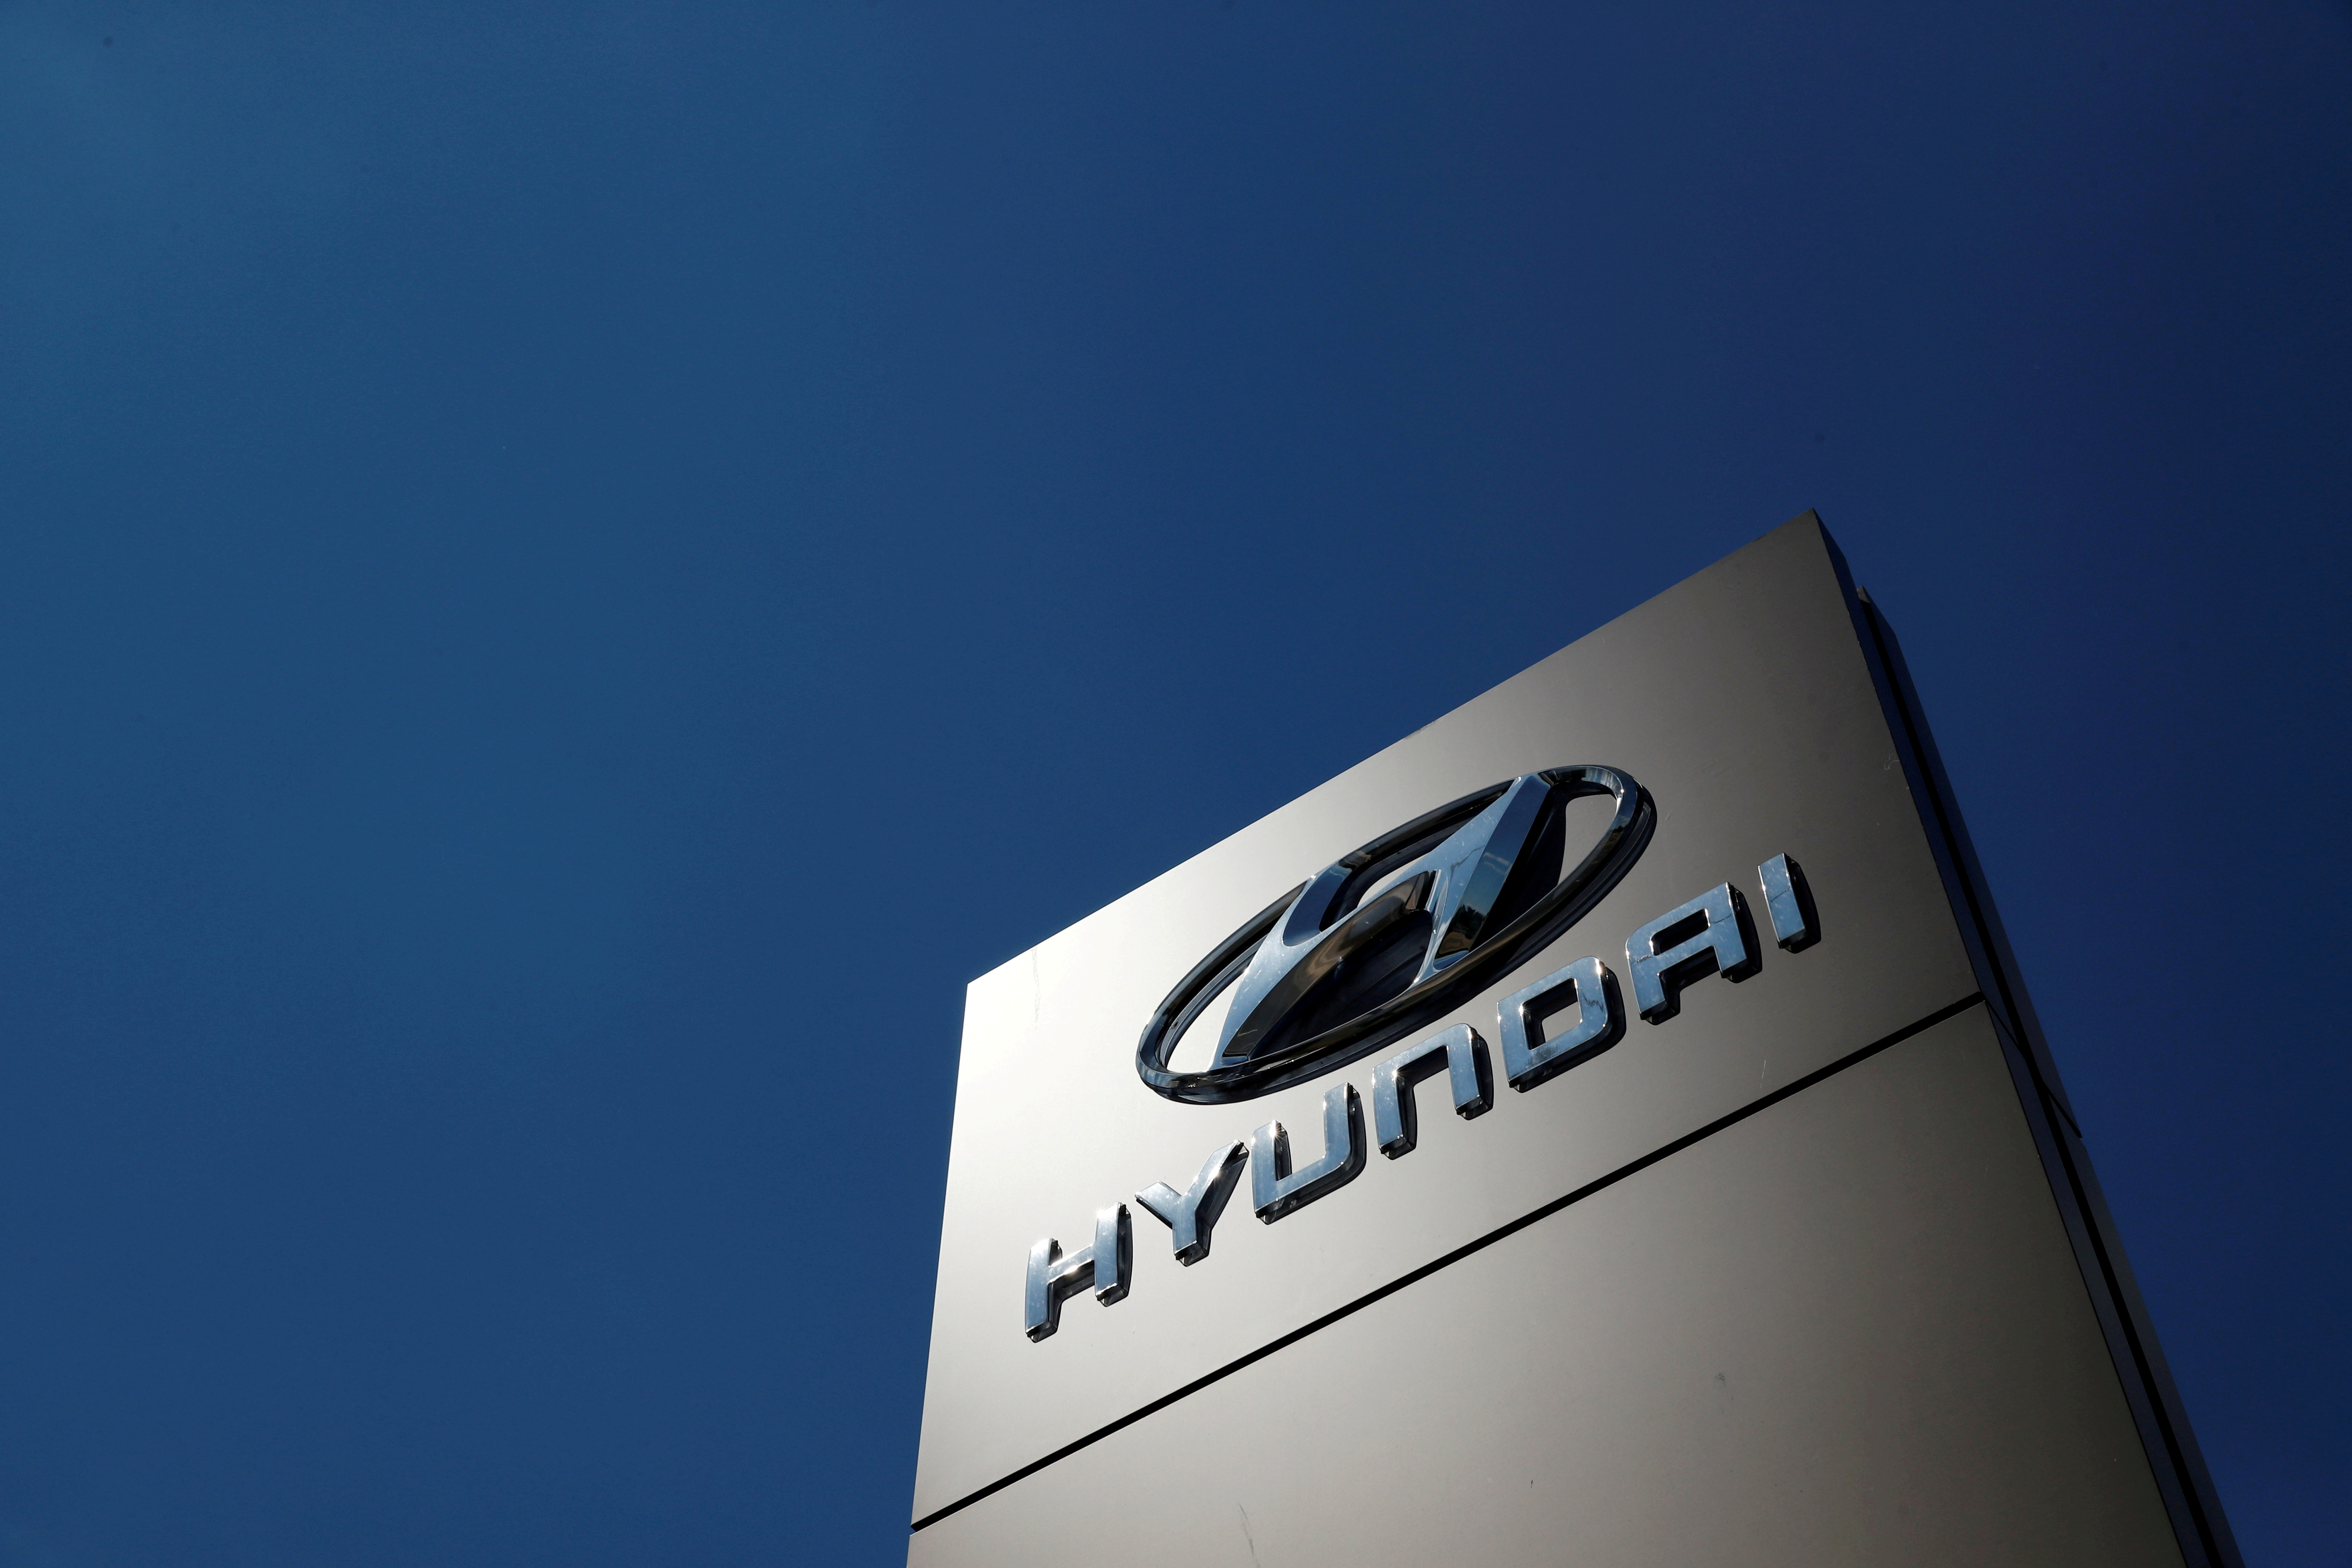 A shop sign of Hyundai is seen outside a car showroom in Bletchley, Milton Keynes, Britain, May 31, 2020. REUTERS/Andrew Boyers/File Photo